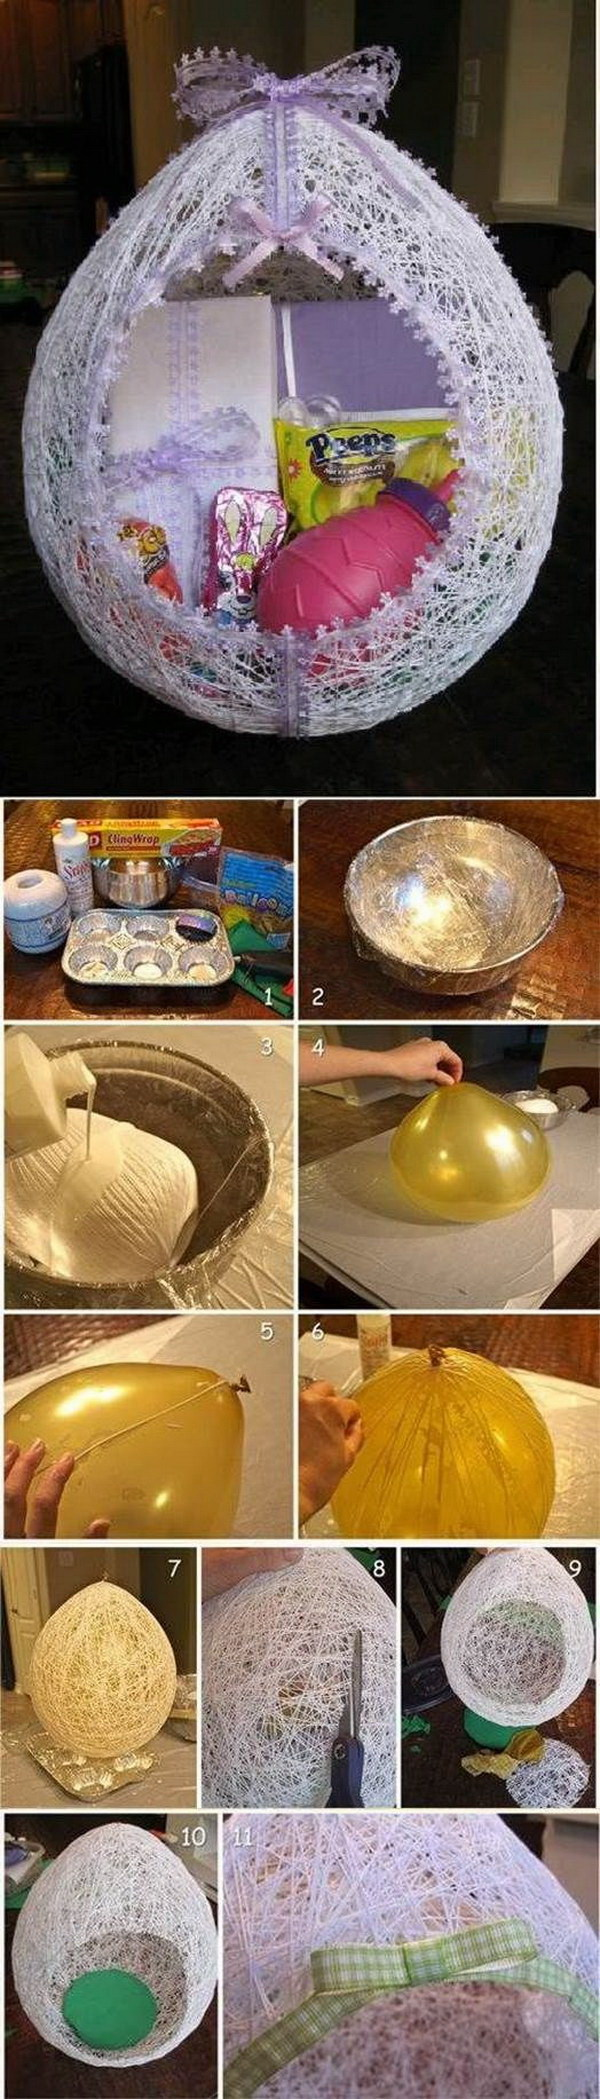 DIY Easter Decoration Ideas: Egg Shaped Easter Basket From String.